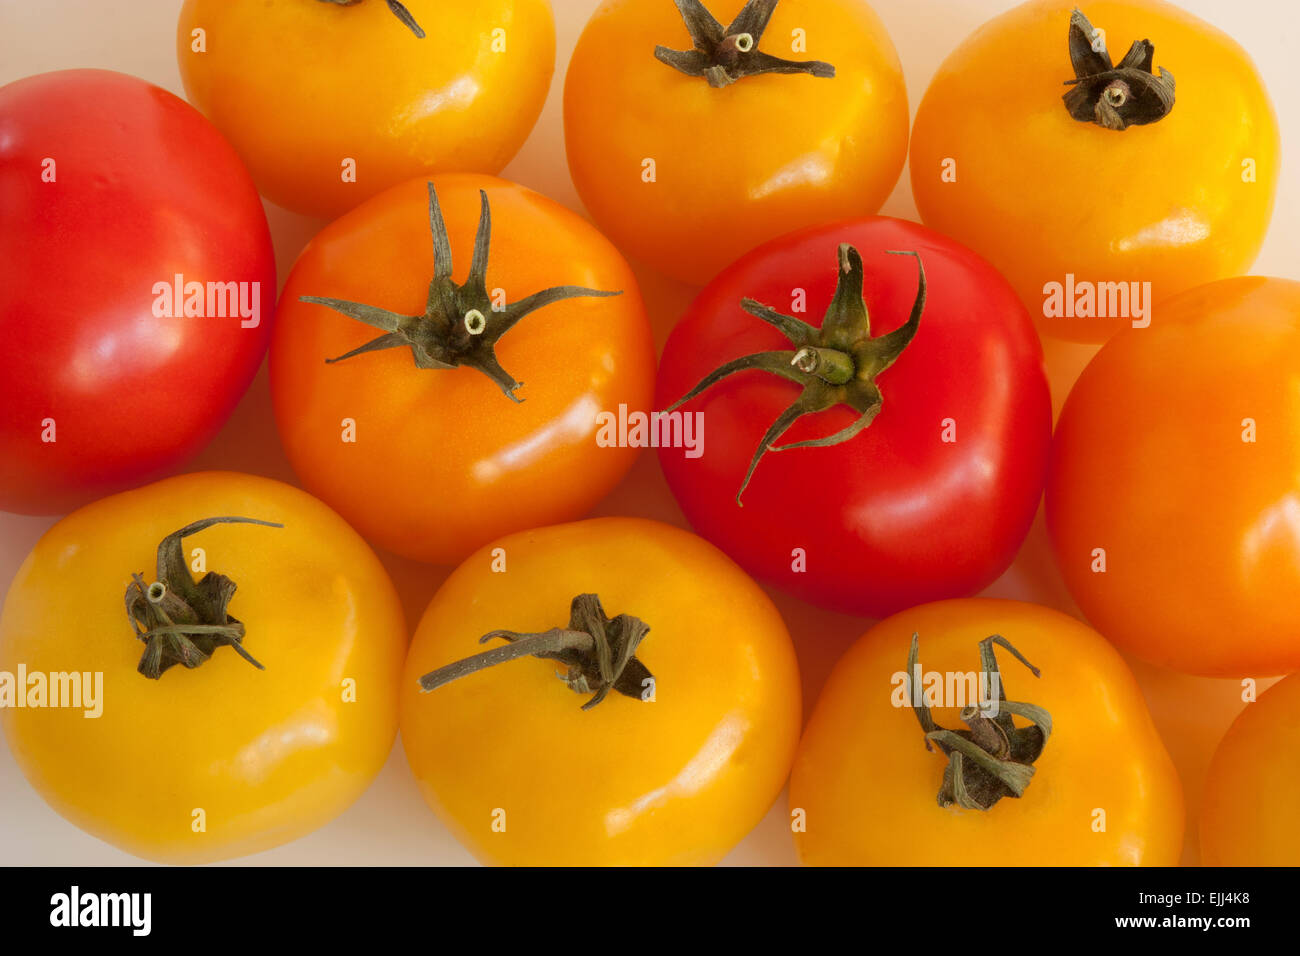 Absorbed tomatoes - Stock Image